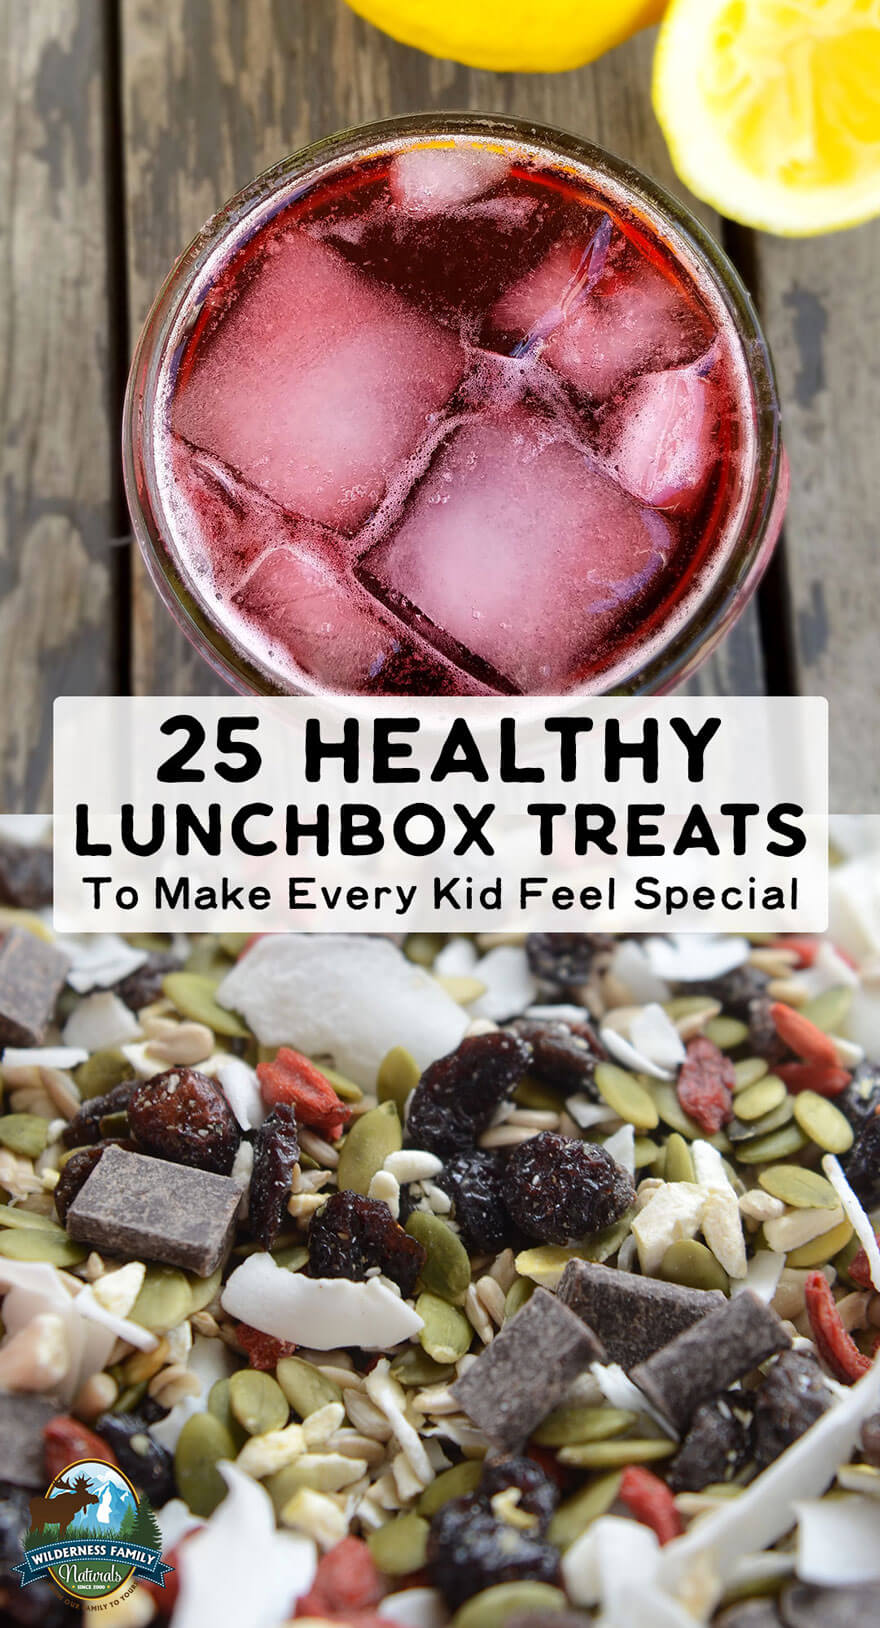 It's time to start shopping for school supplies, time to meet the teacher, and time to plan out all the wonderful, healthy things you're going to pack in lunchboxes this year.